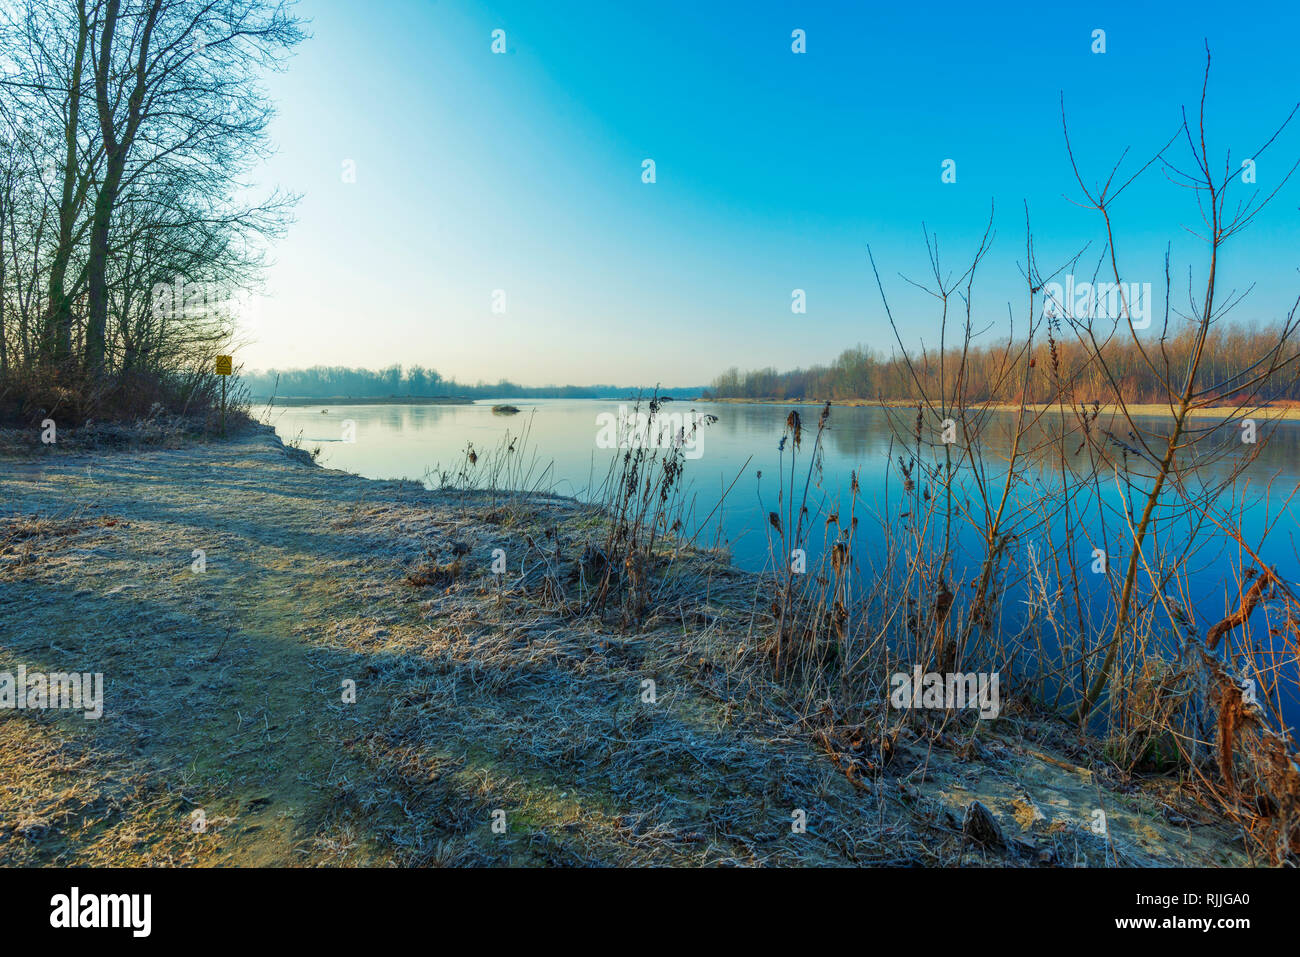 a winter sunrise in a sunny morning over the Ticino river - Stock Image